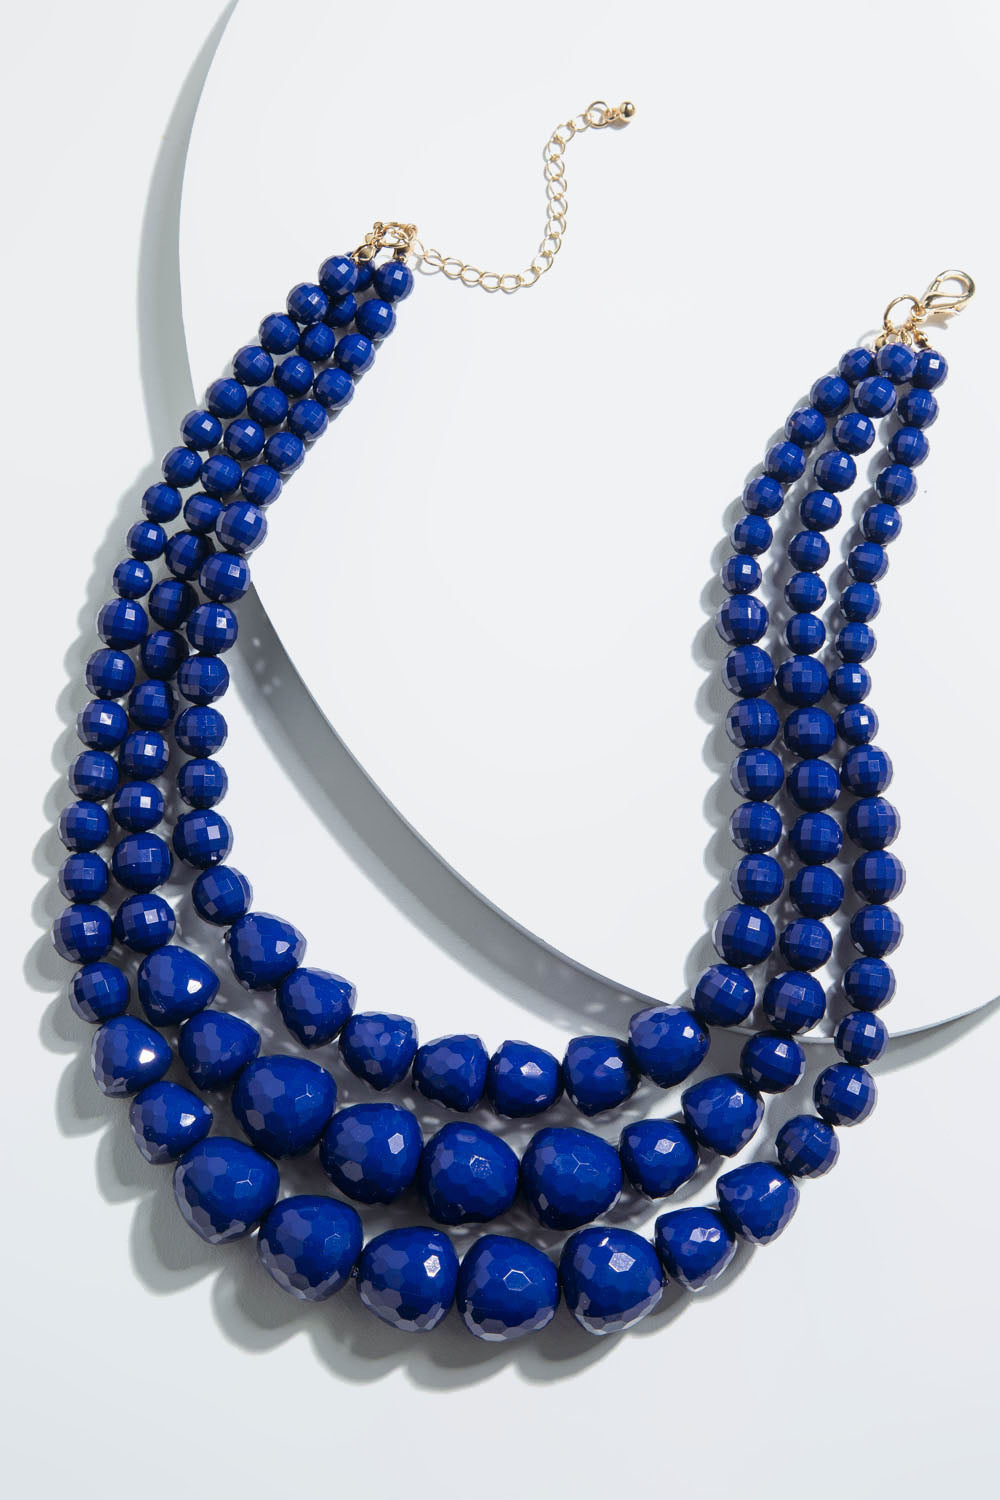 Type 4 Blue Perfection Necklace